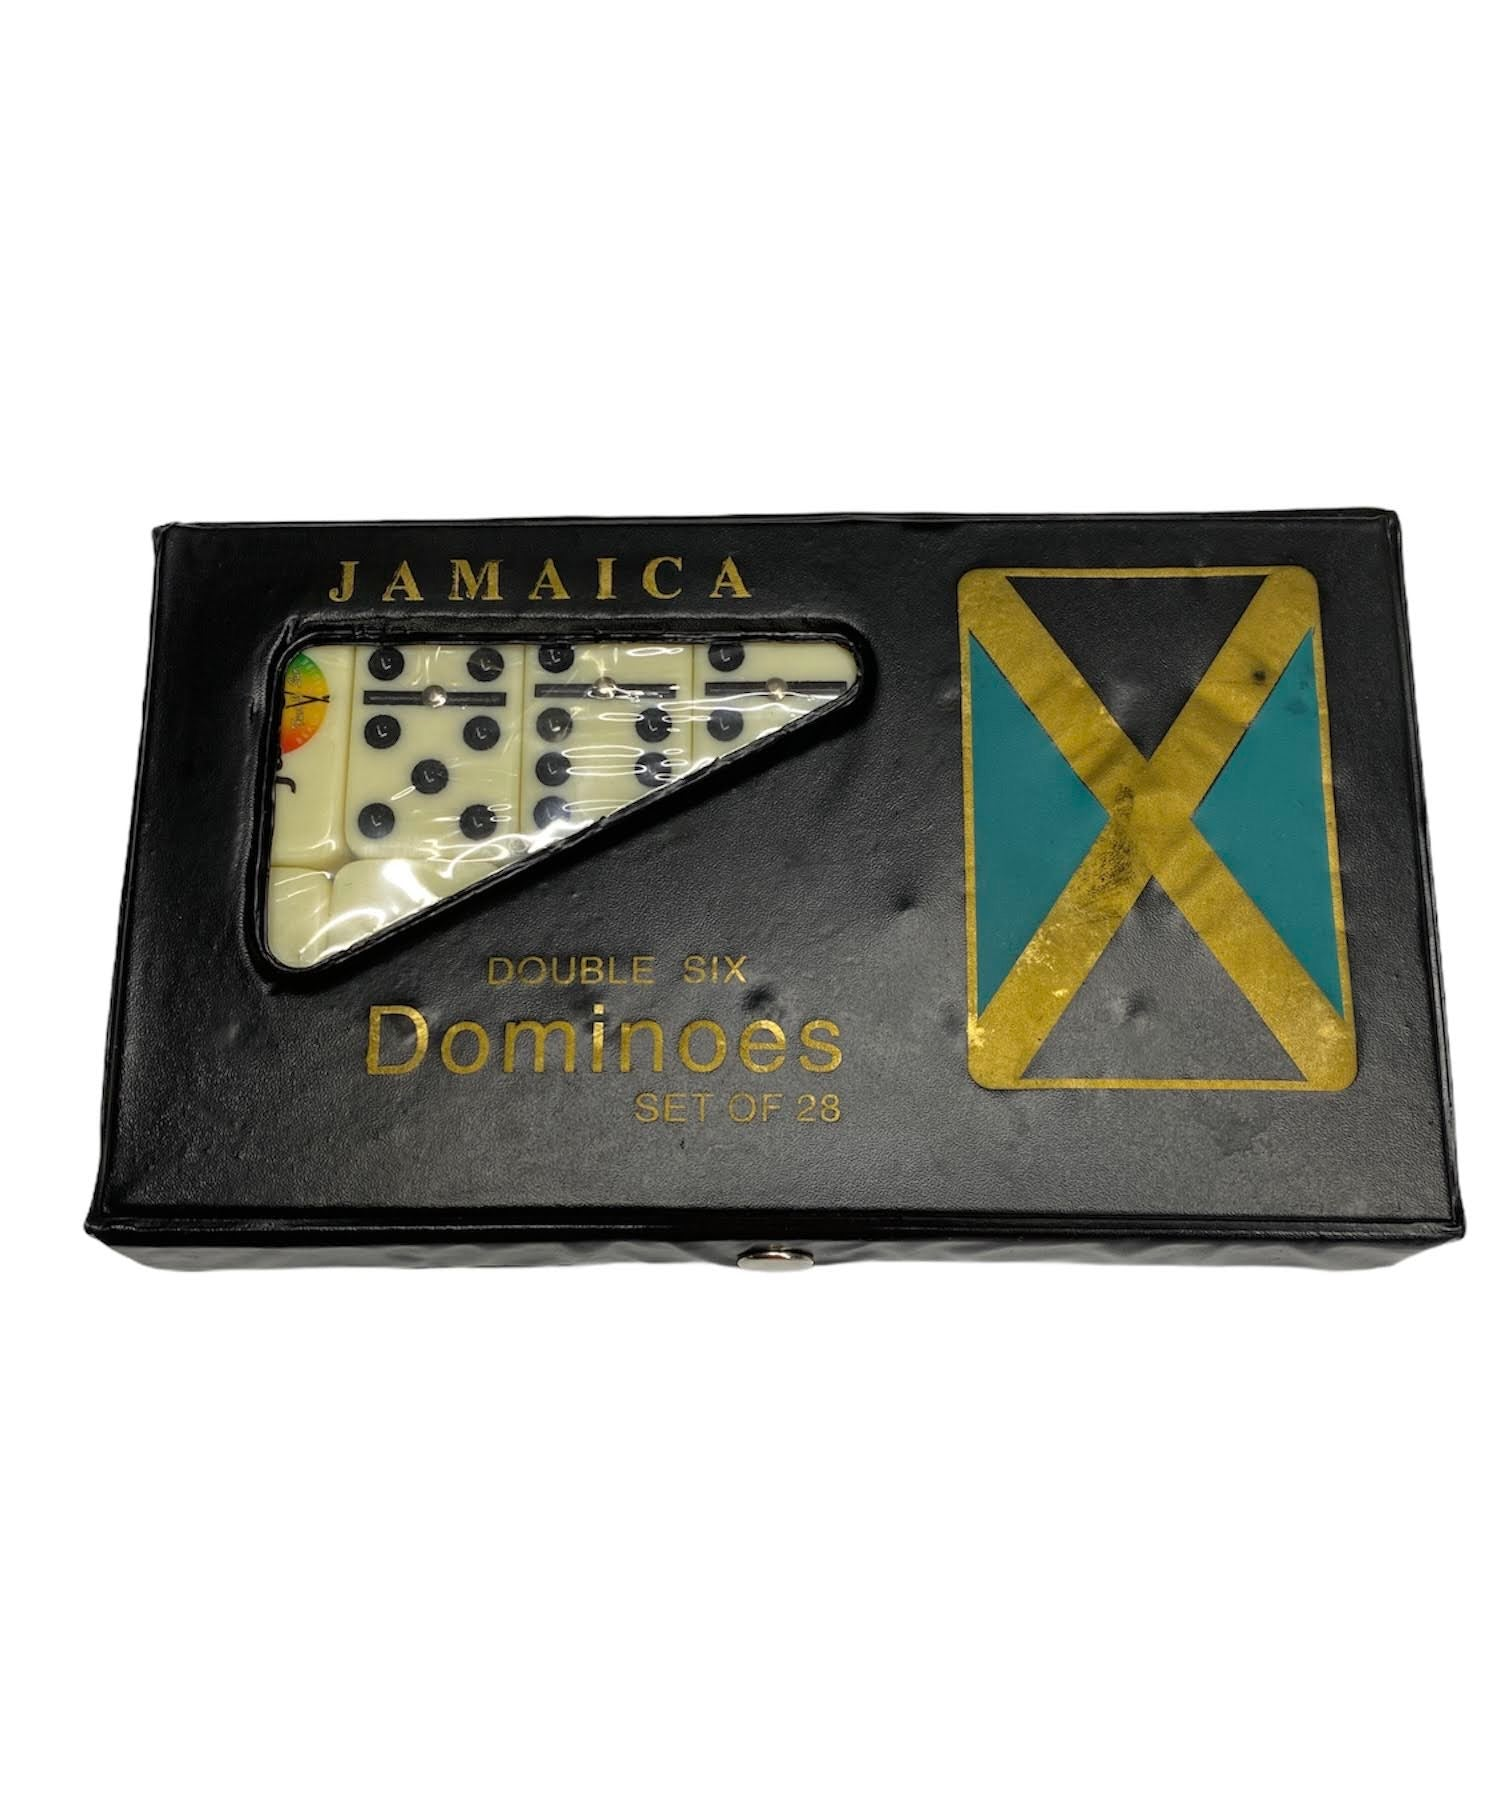 Jamaica Dominoes Jumbo Set